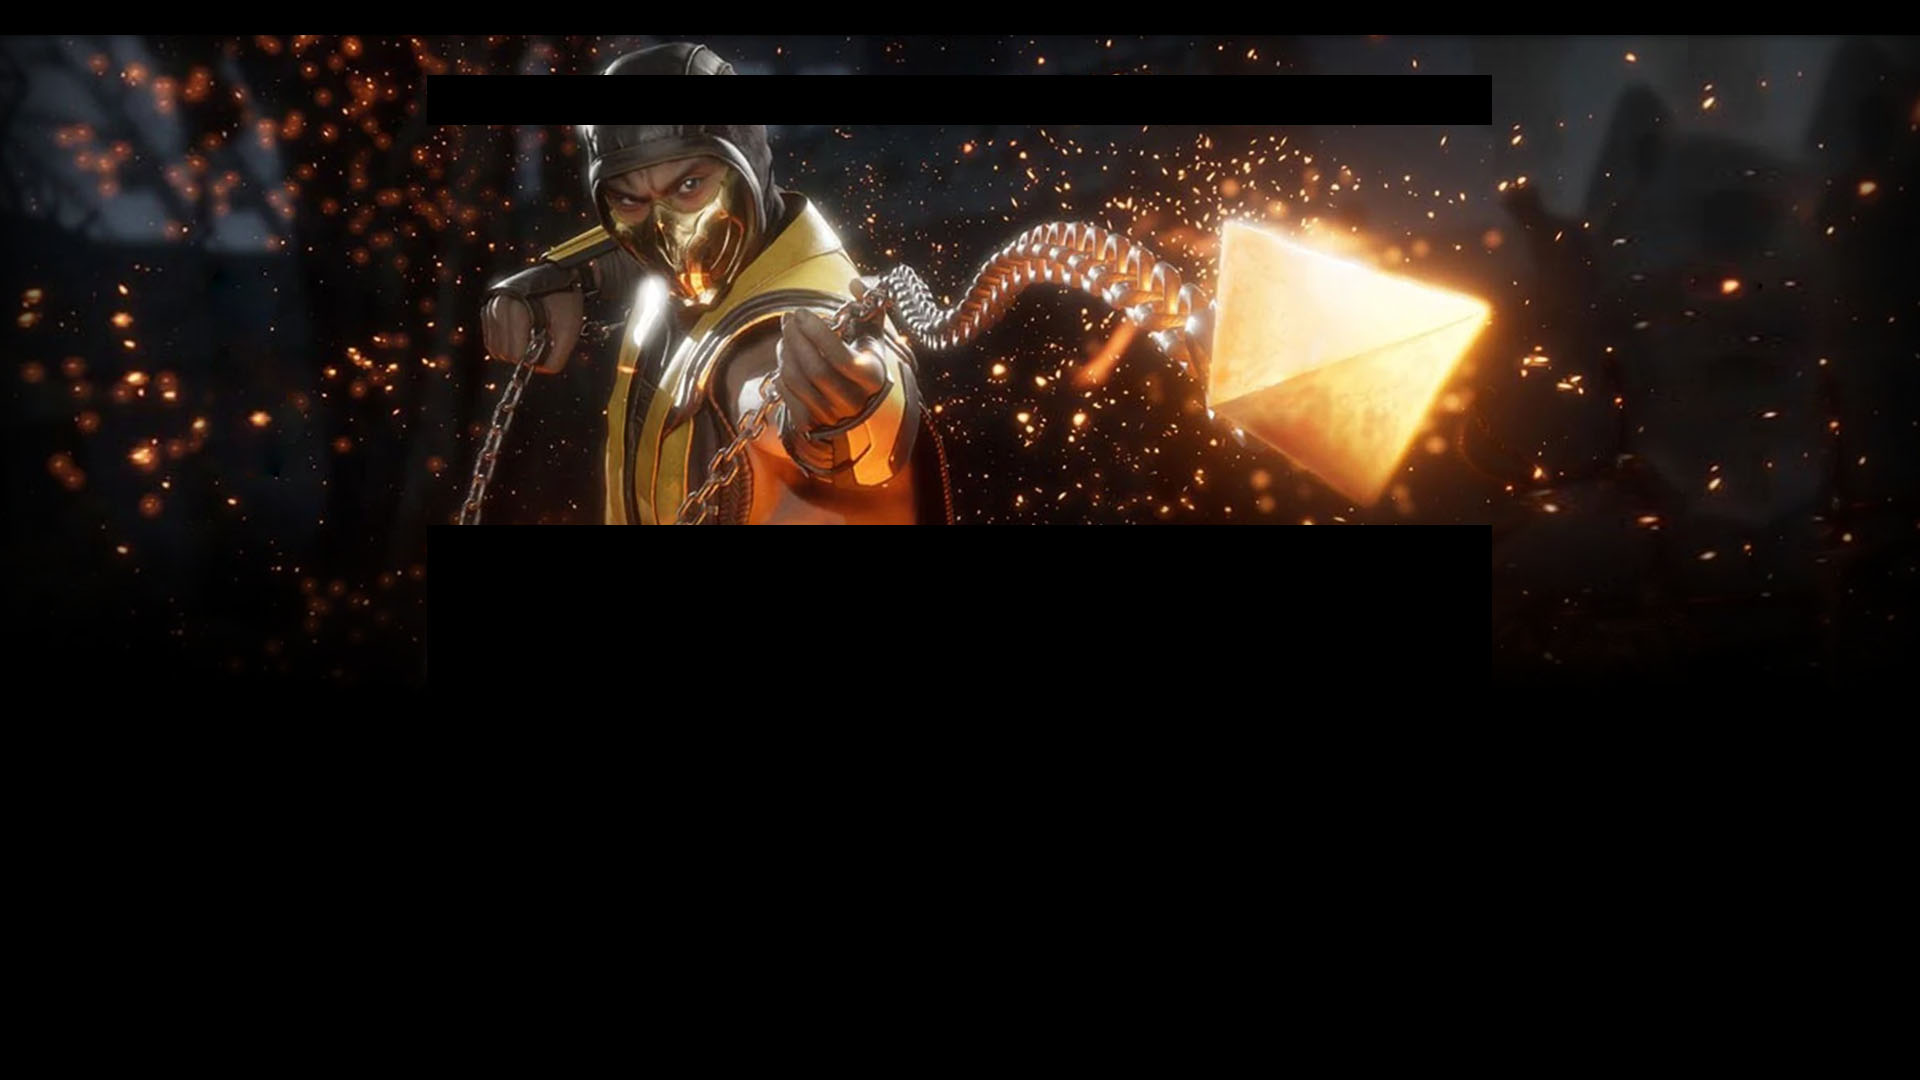 Mortal Kombat 11 [PC/PS4/Xbox One] video game